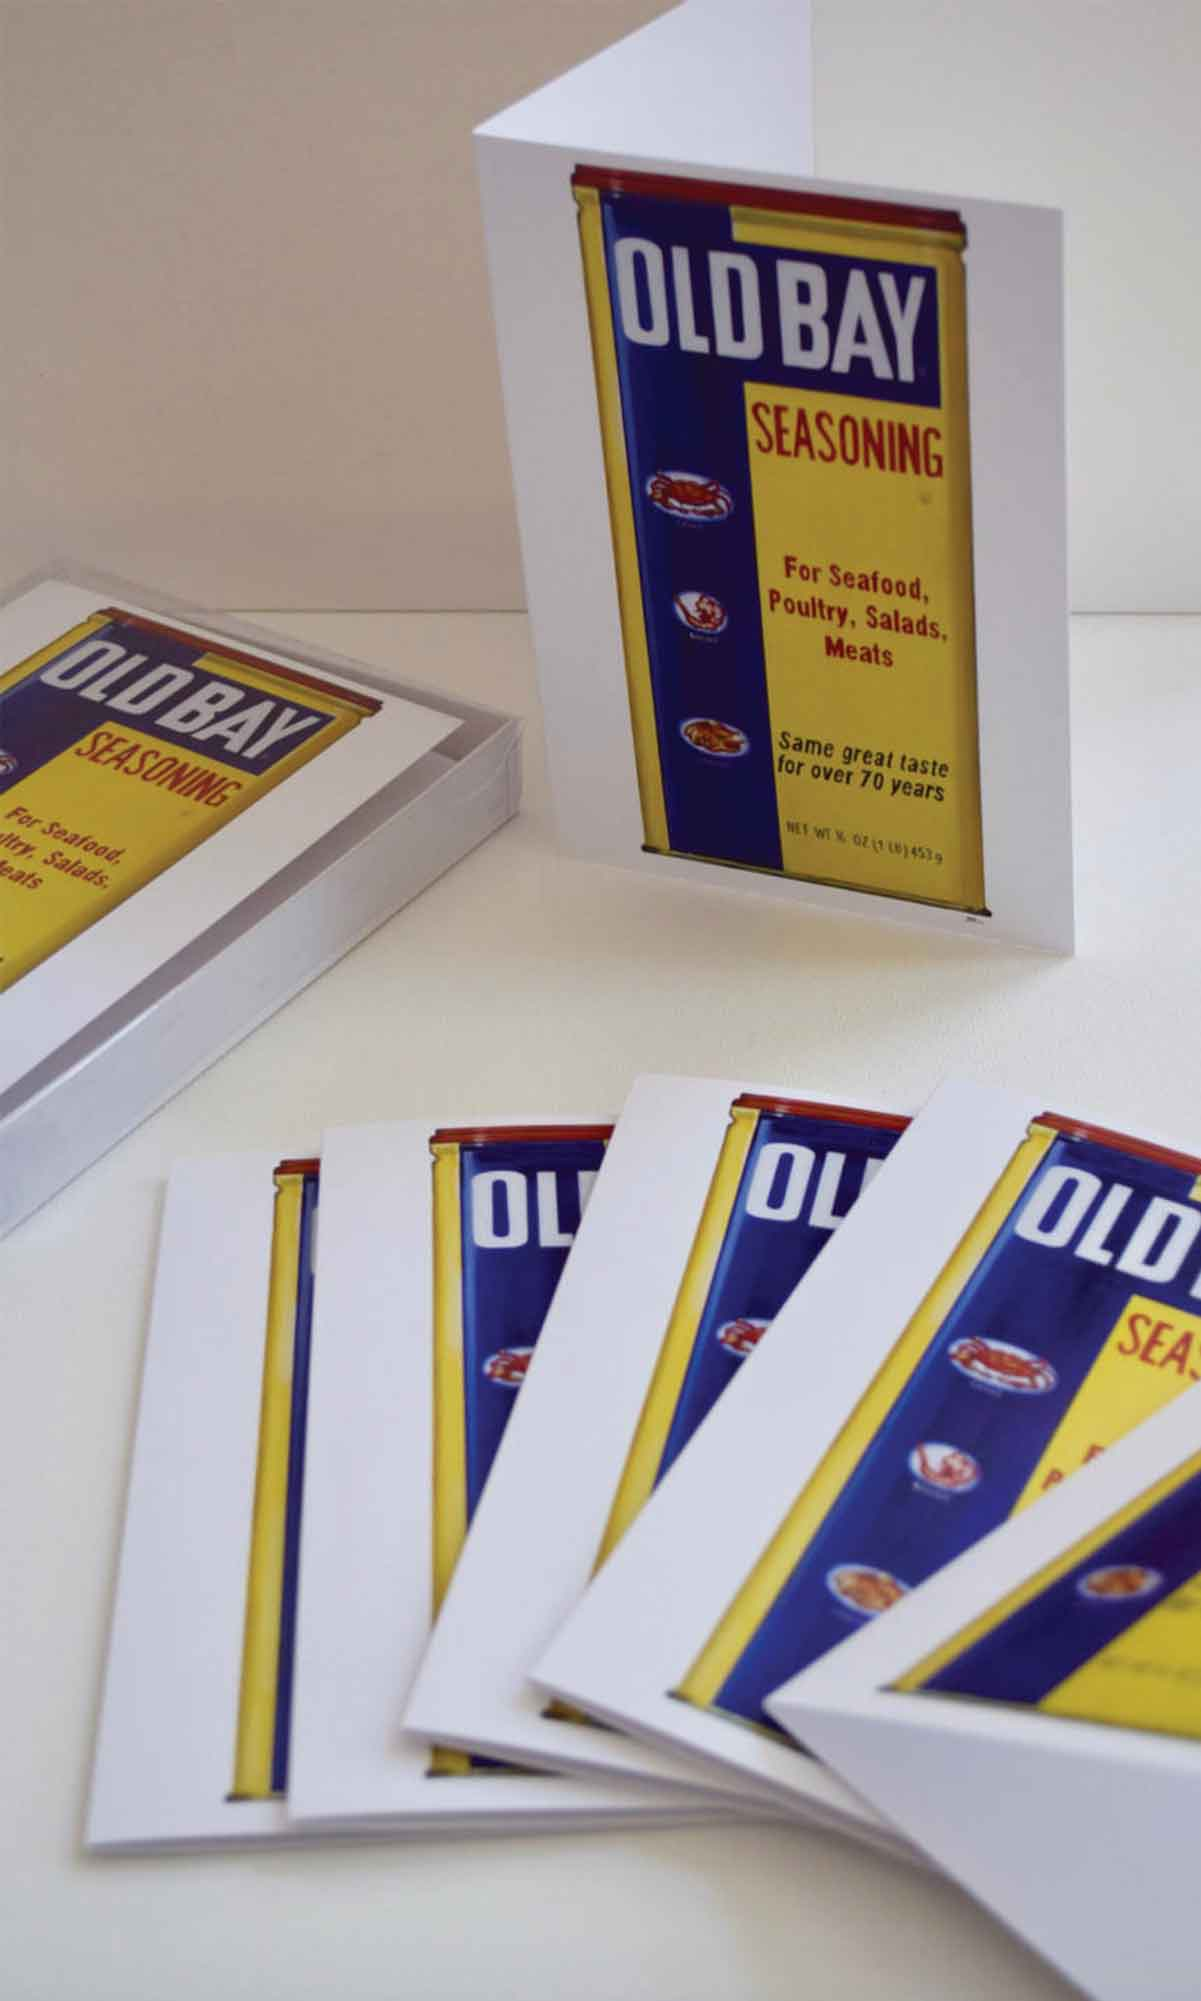 Old Bay Seasoning Stationary